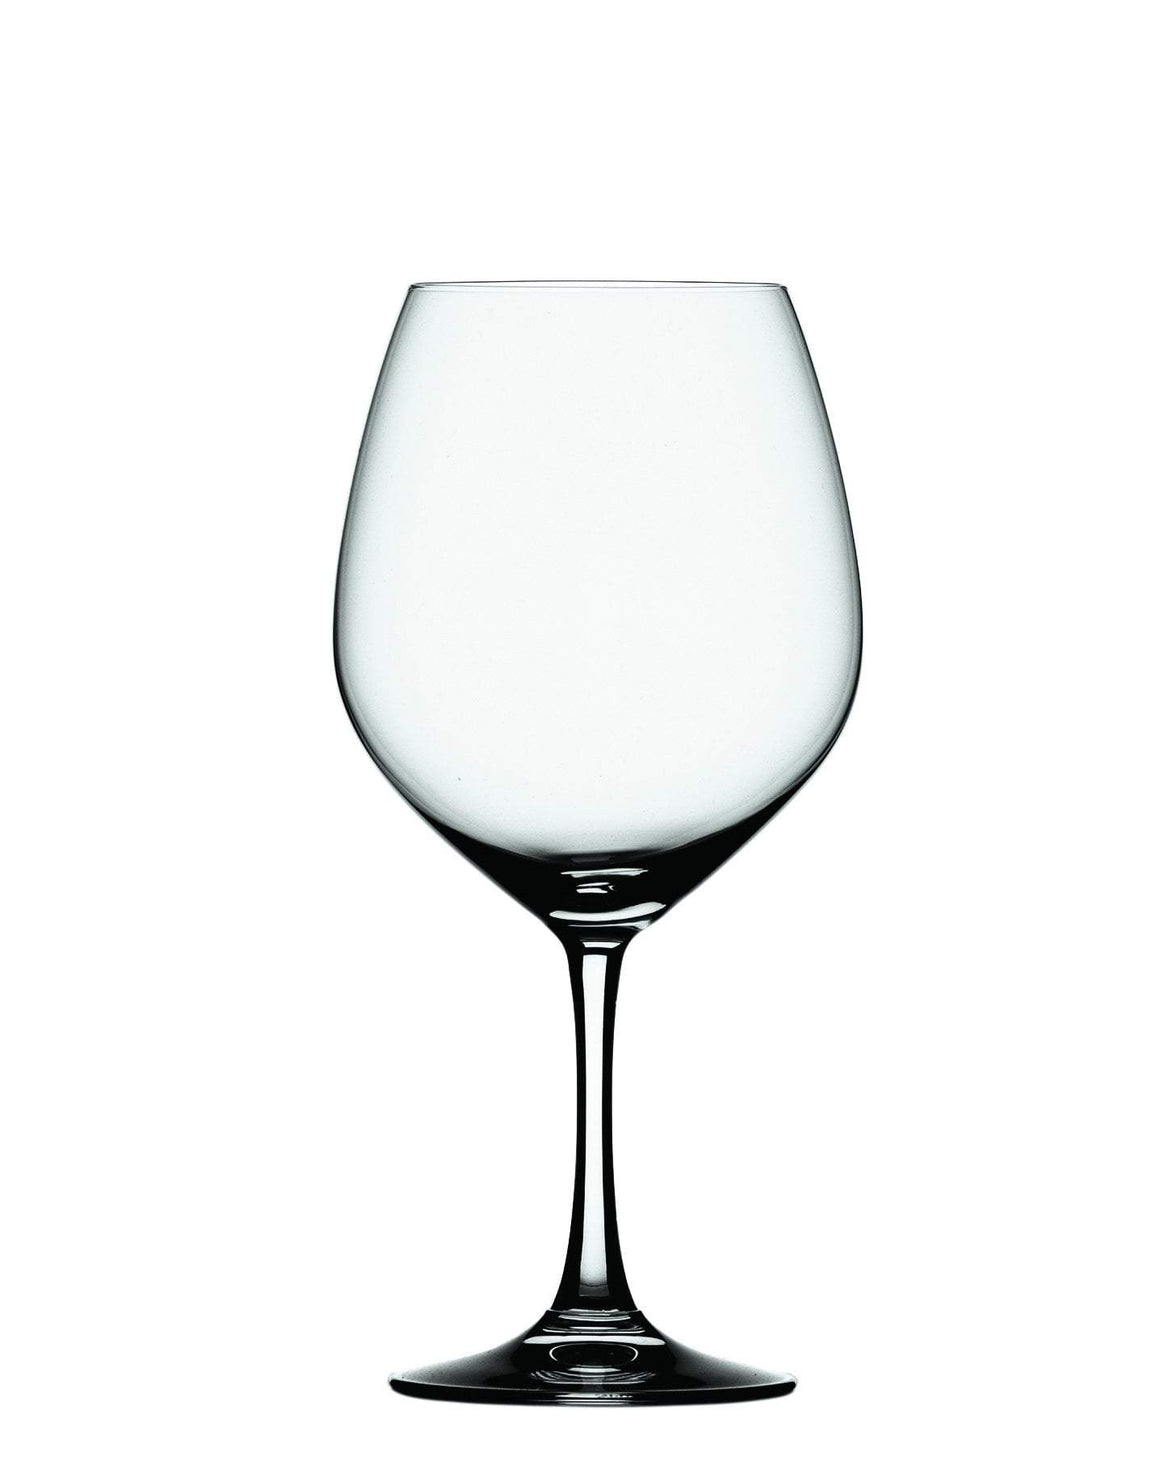 Spiegelau Wine Glasses Spiegelau Vino Grande Burgundy Glass 25 oz (Set of 4)